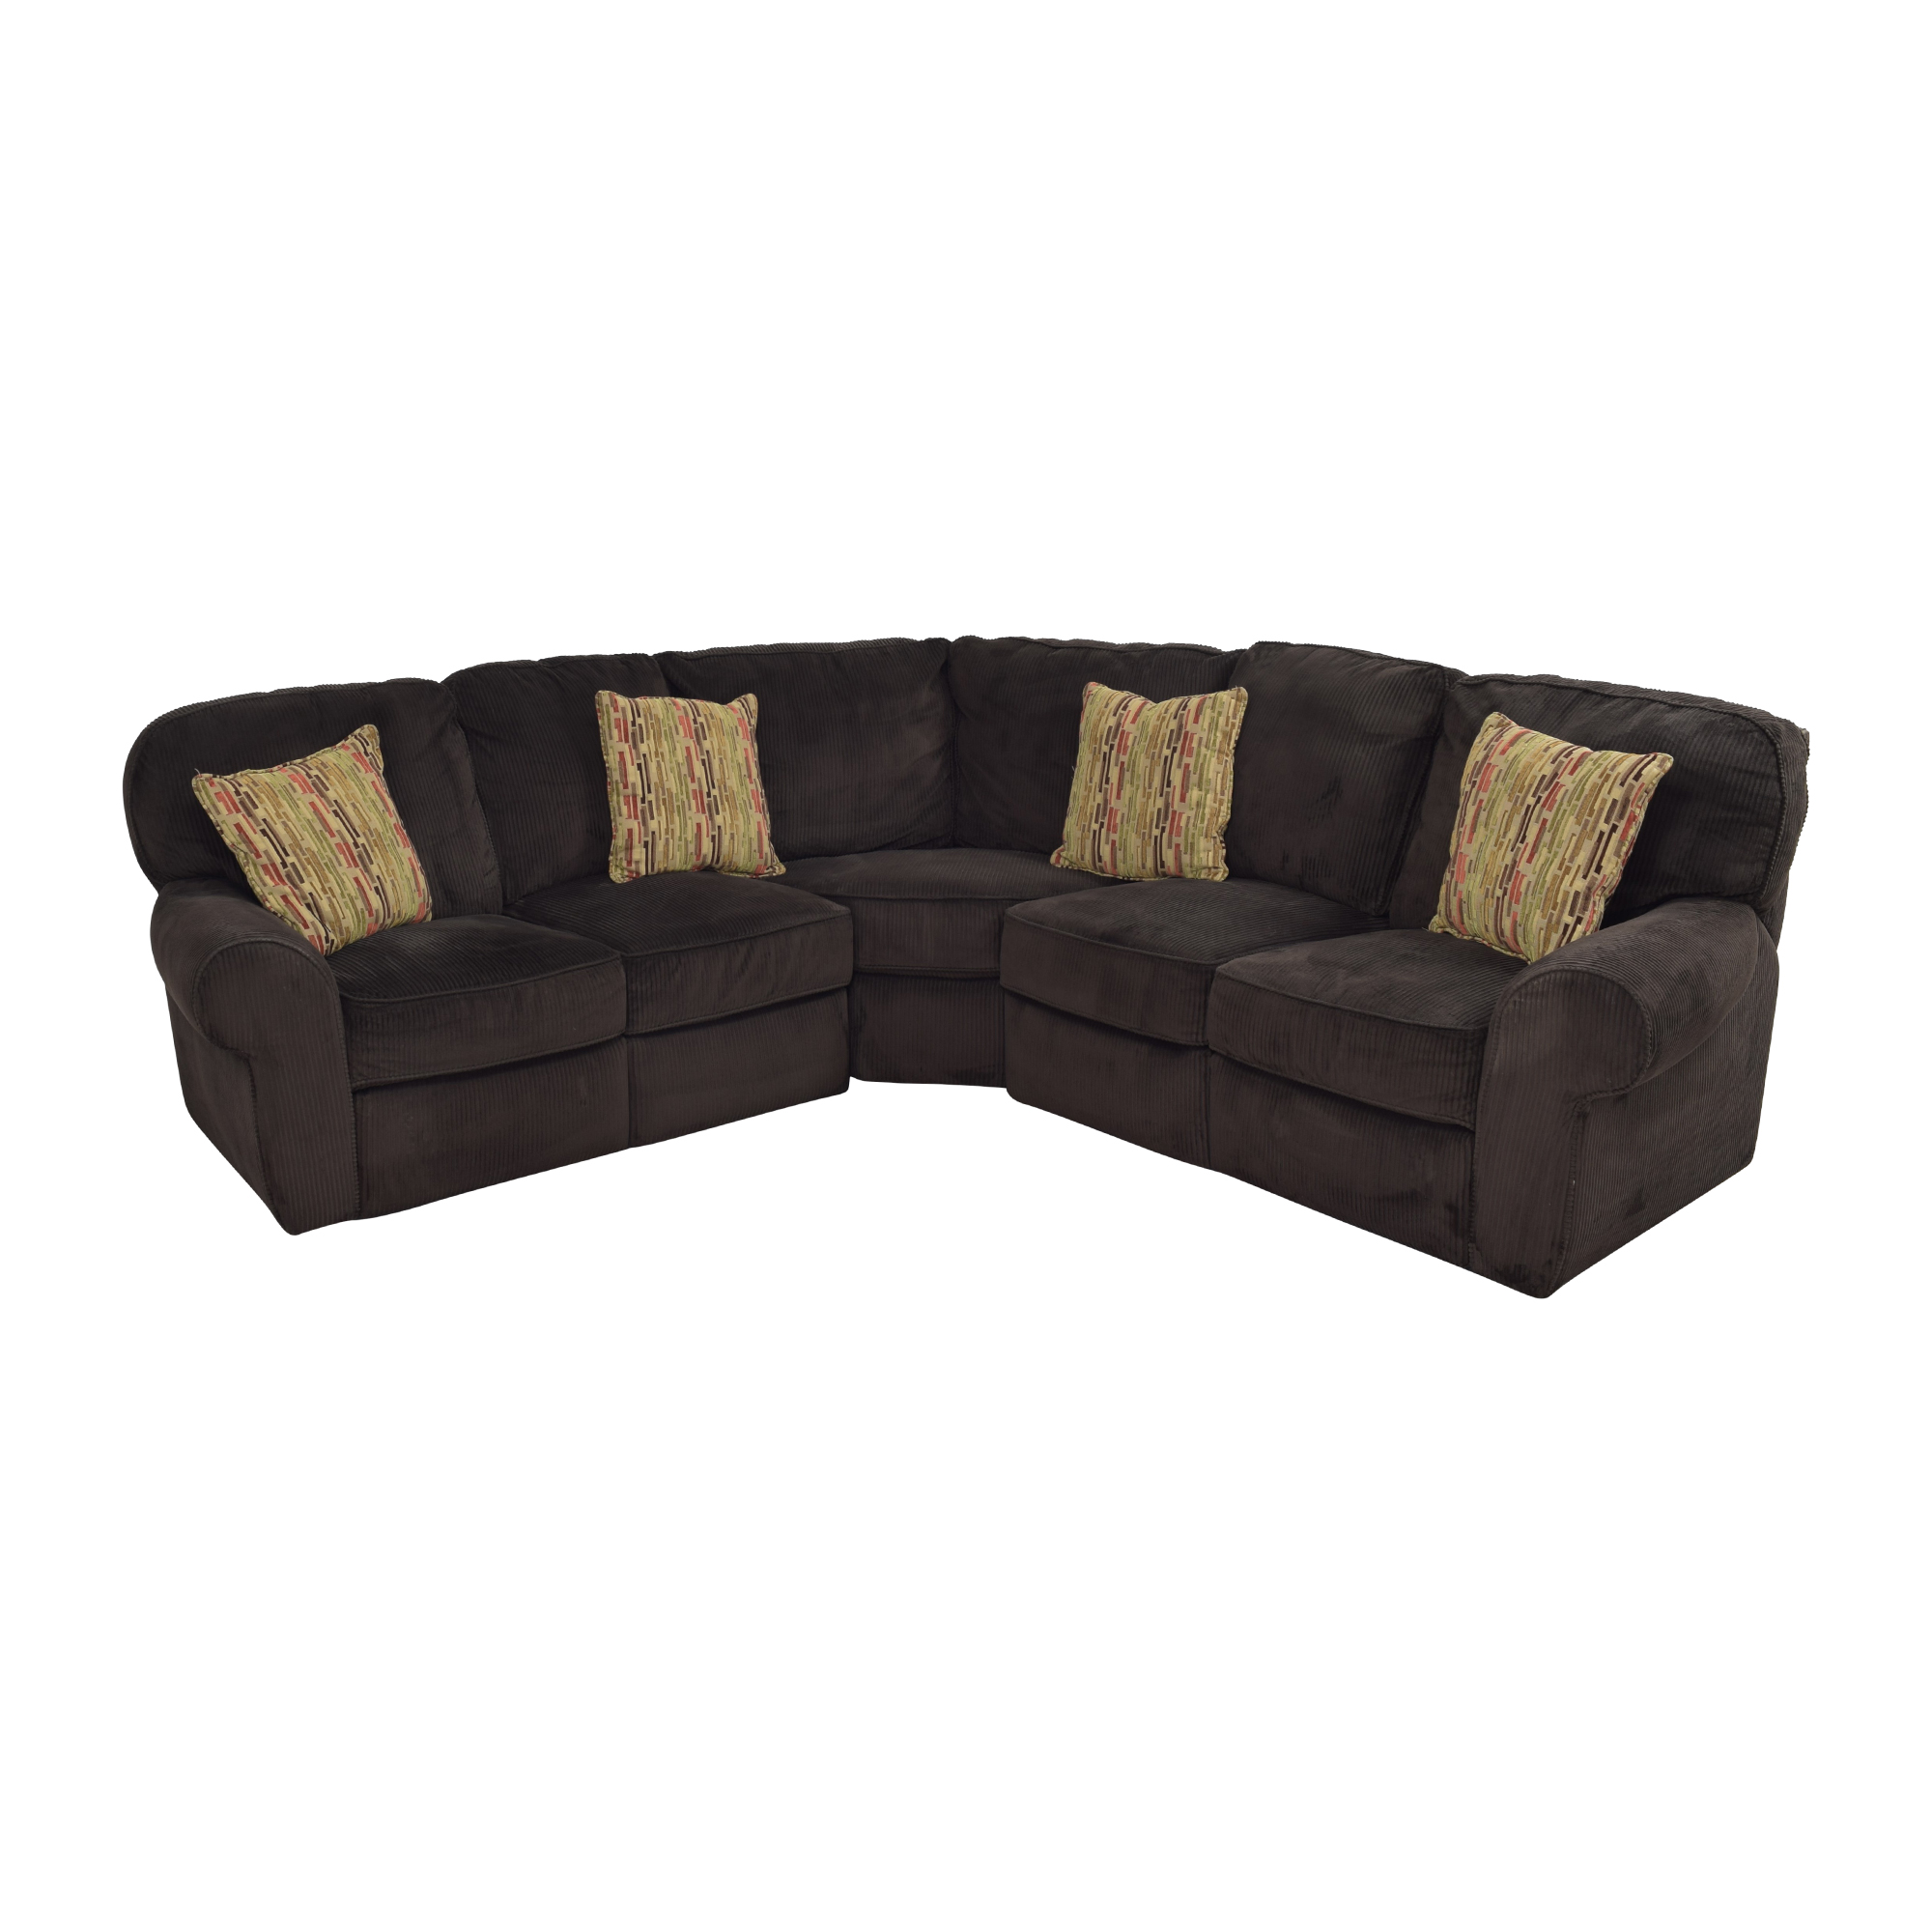 Lane Furniture Lane Furniture Megan Three Piece Reclining Sectional dark brown